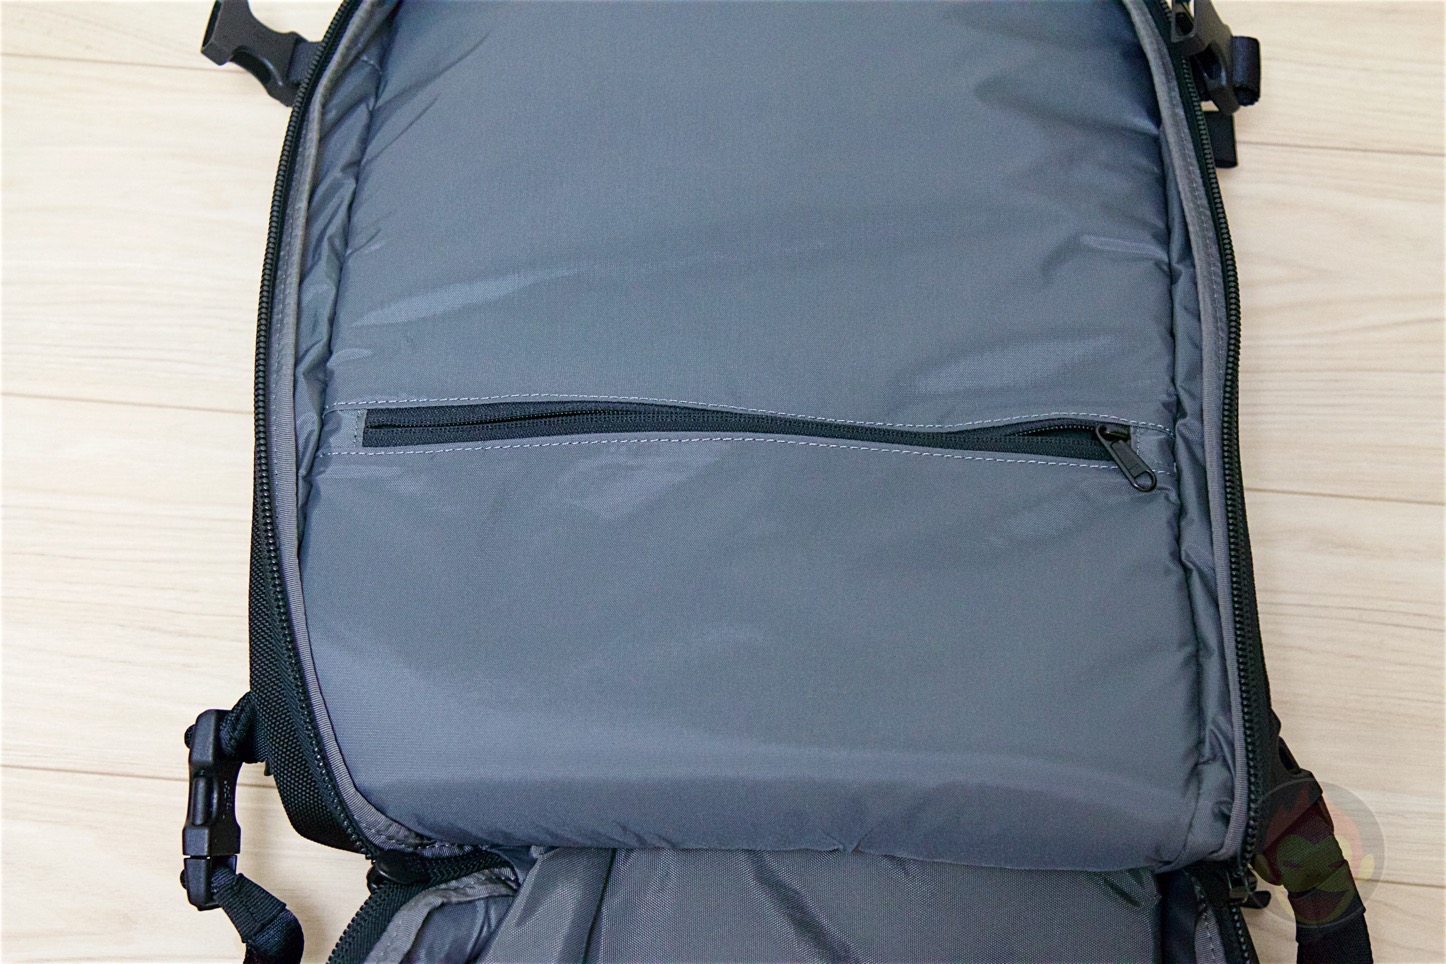 Aer-Travel-BackPack-on-Kickstarter-25.jpg